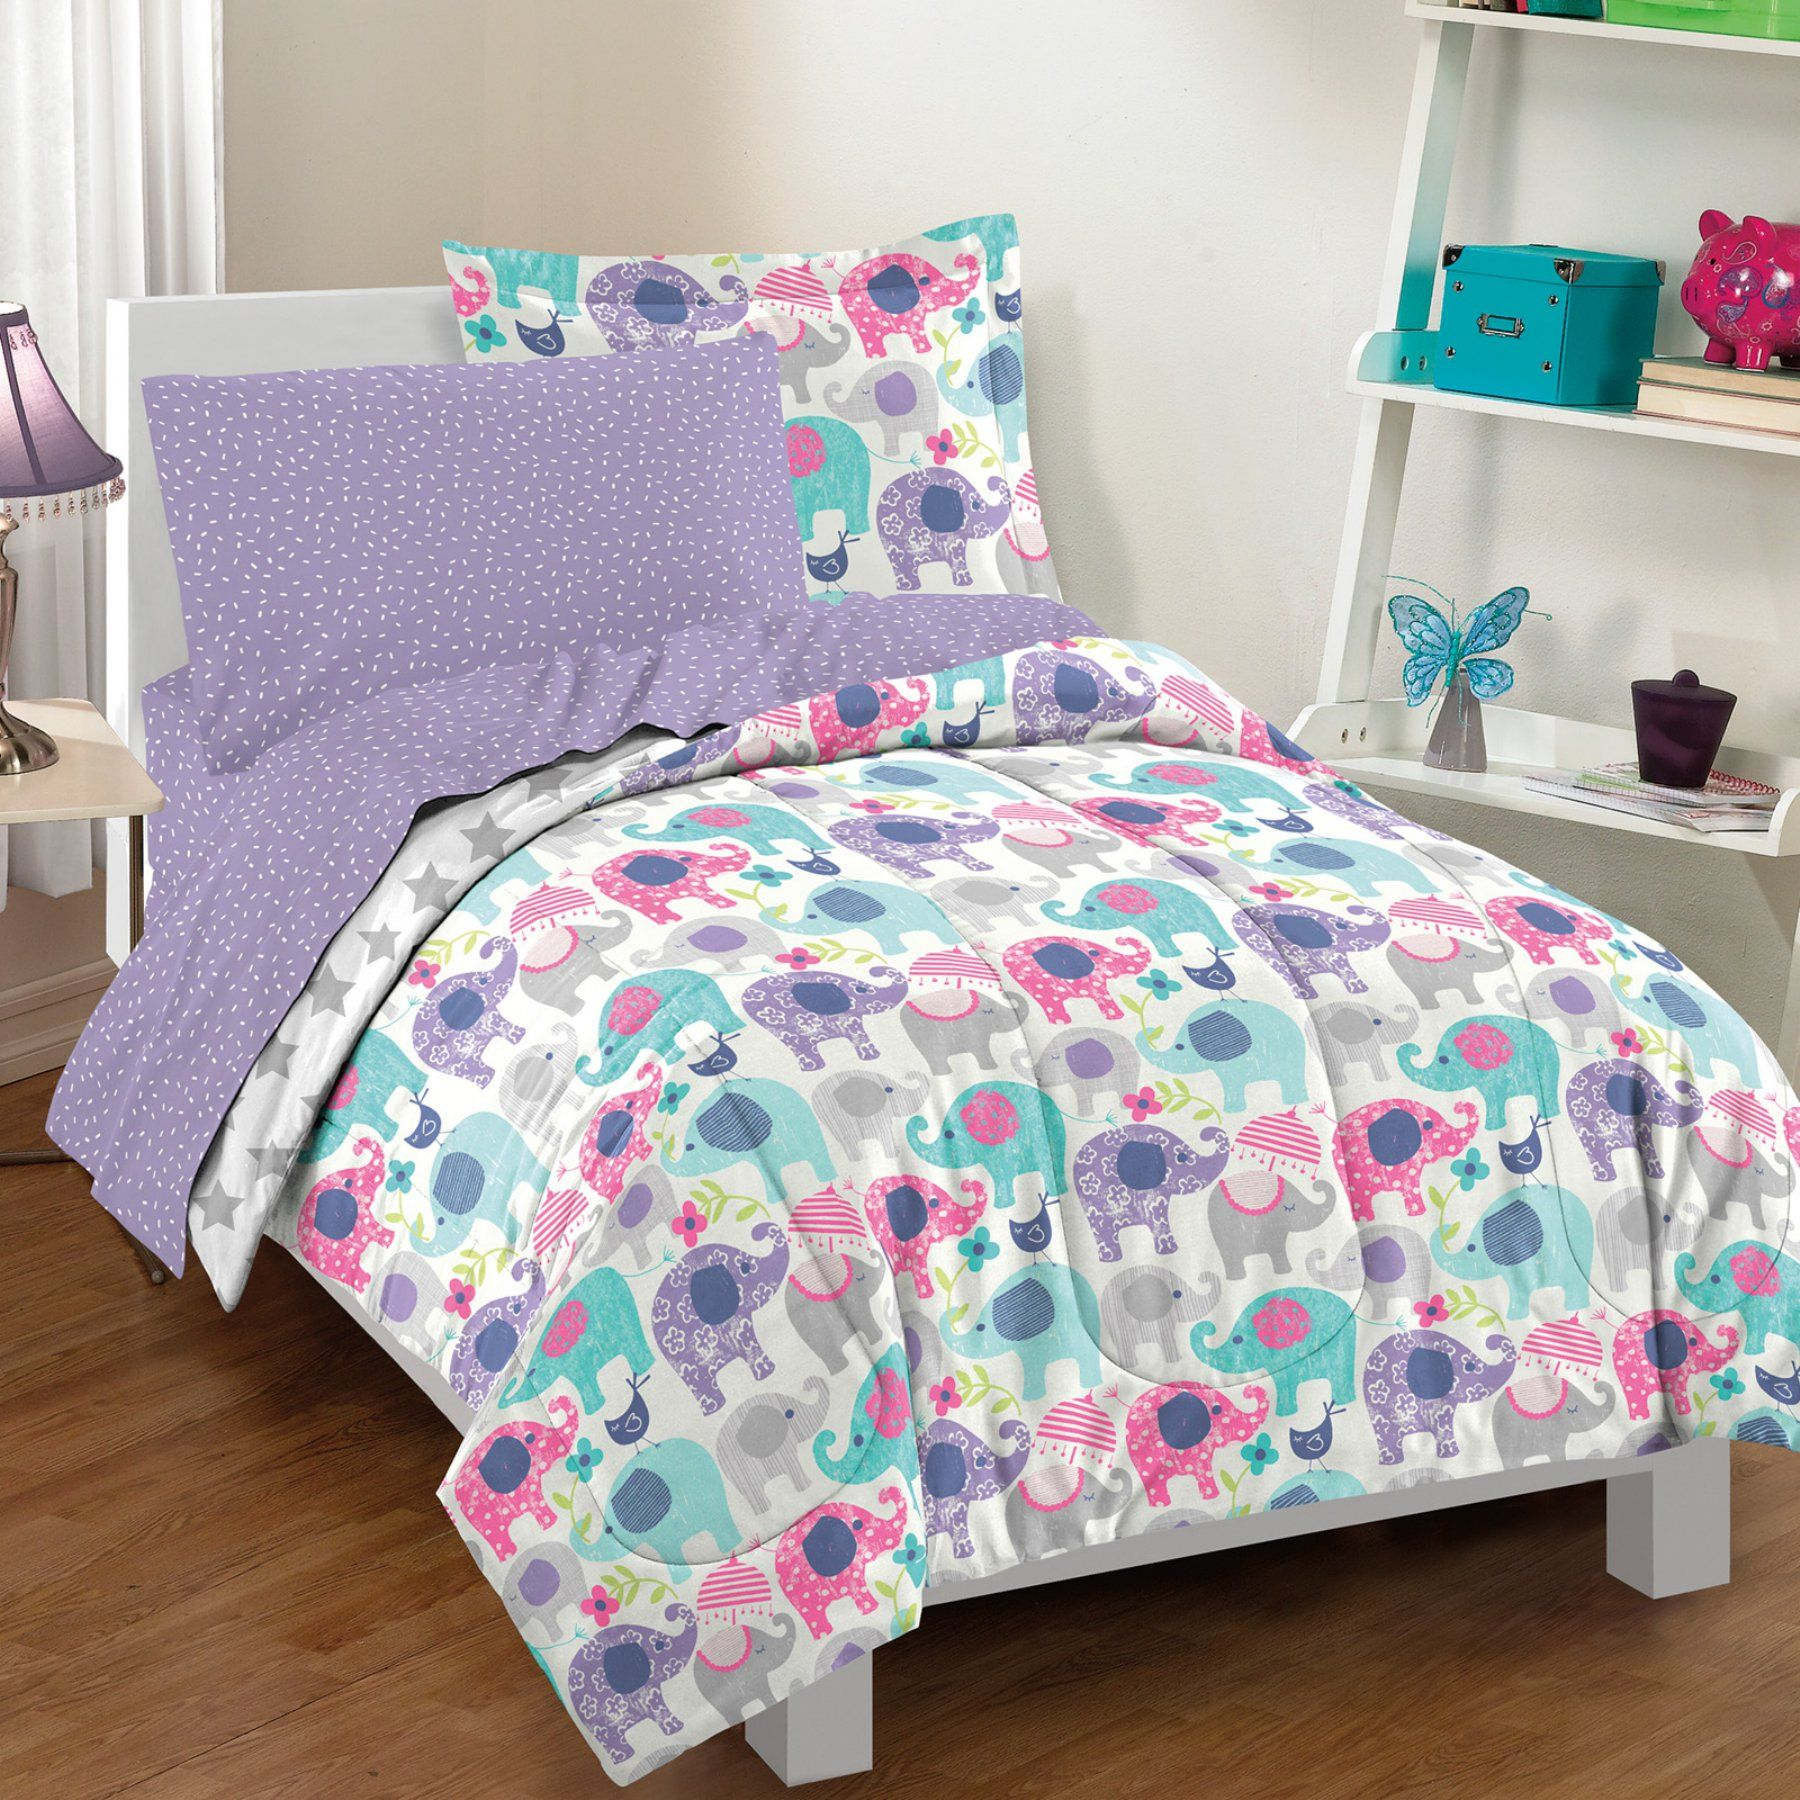 Elley Elephant Bed In A Bag Set By Dream Factory